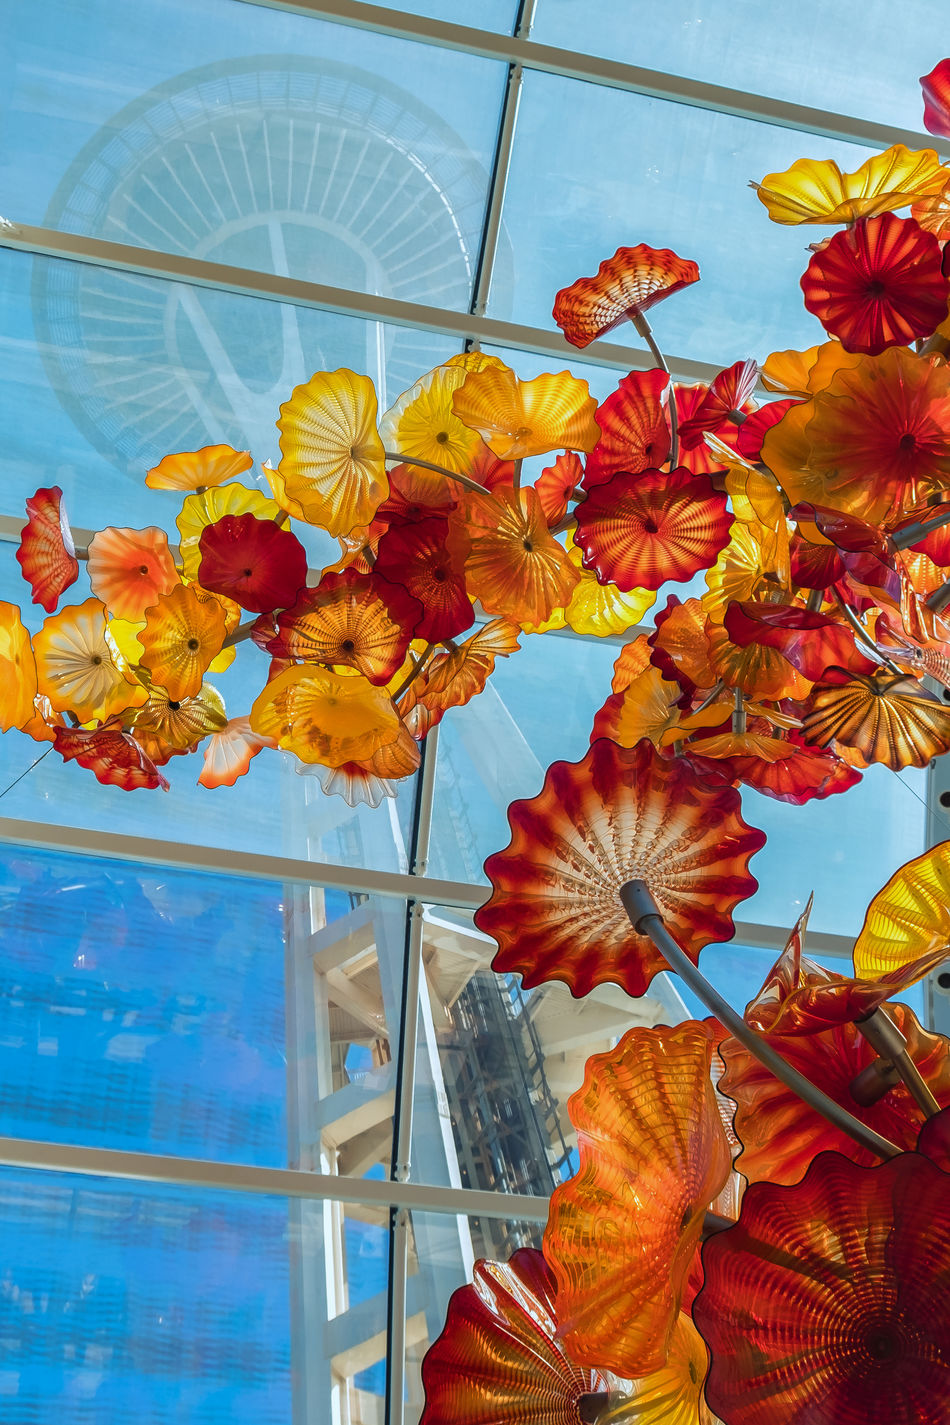 Architecture Autumn Blue Change Chihuly Chihuly Garden And Glass Close-up Day Flower Head Leaf Low Angle View Maple Leaf Multi Colored Nature No People Orange Color Outdoors Scenics Seattle Space Needle Sky Space Needle Yellow